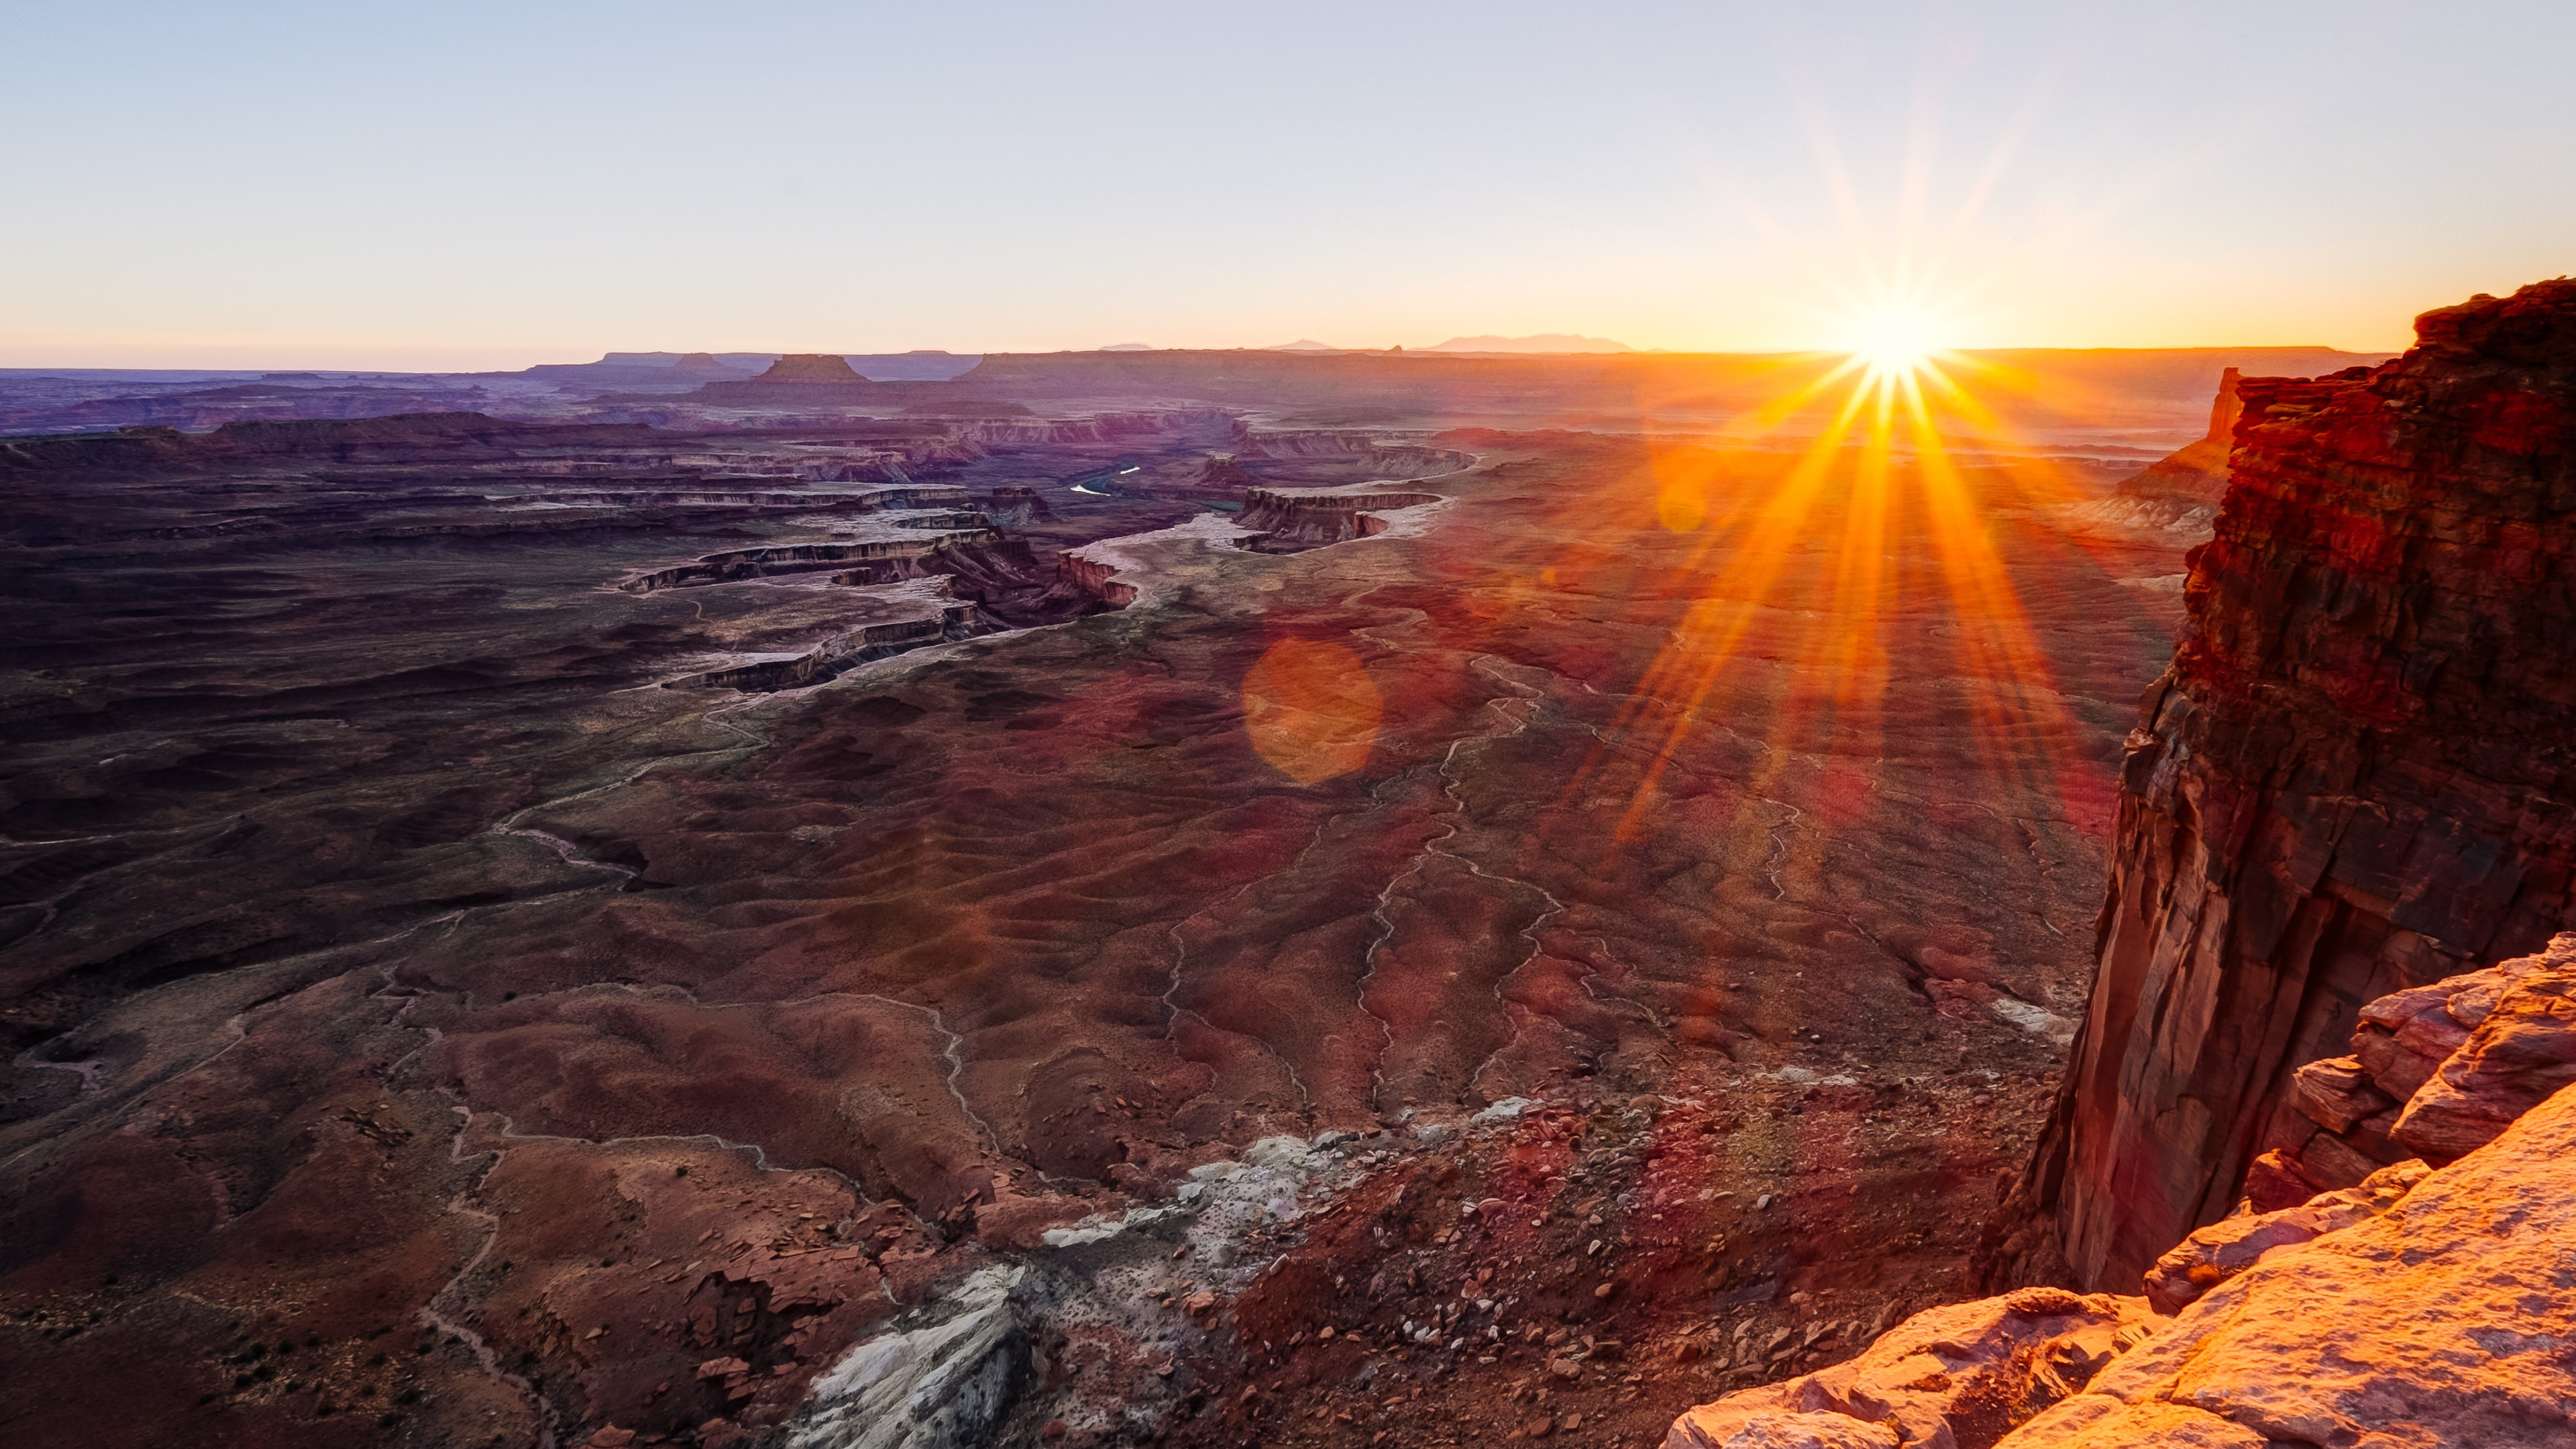 Canyonlands National Park view wallpaper 3840x2160